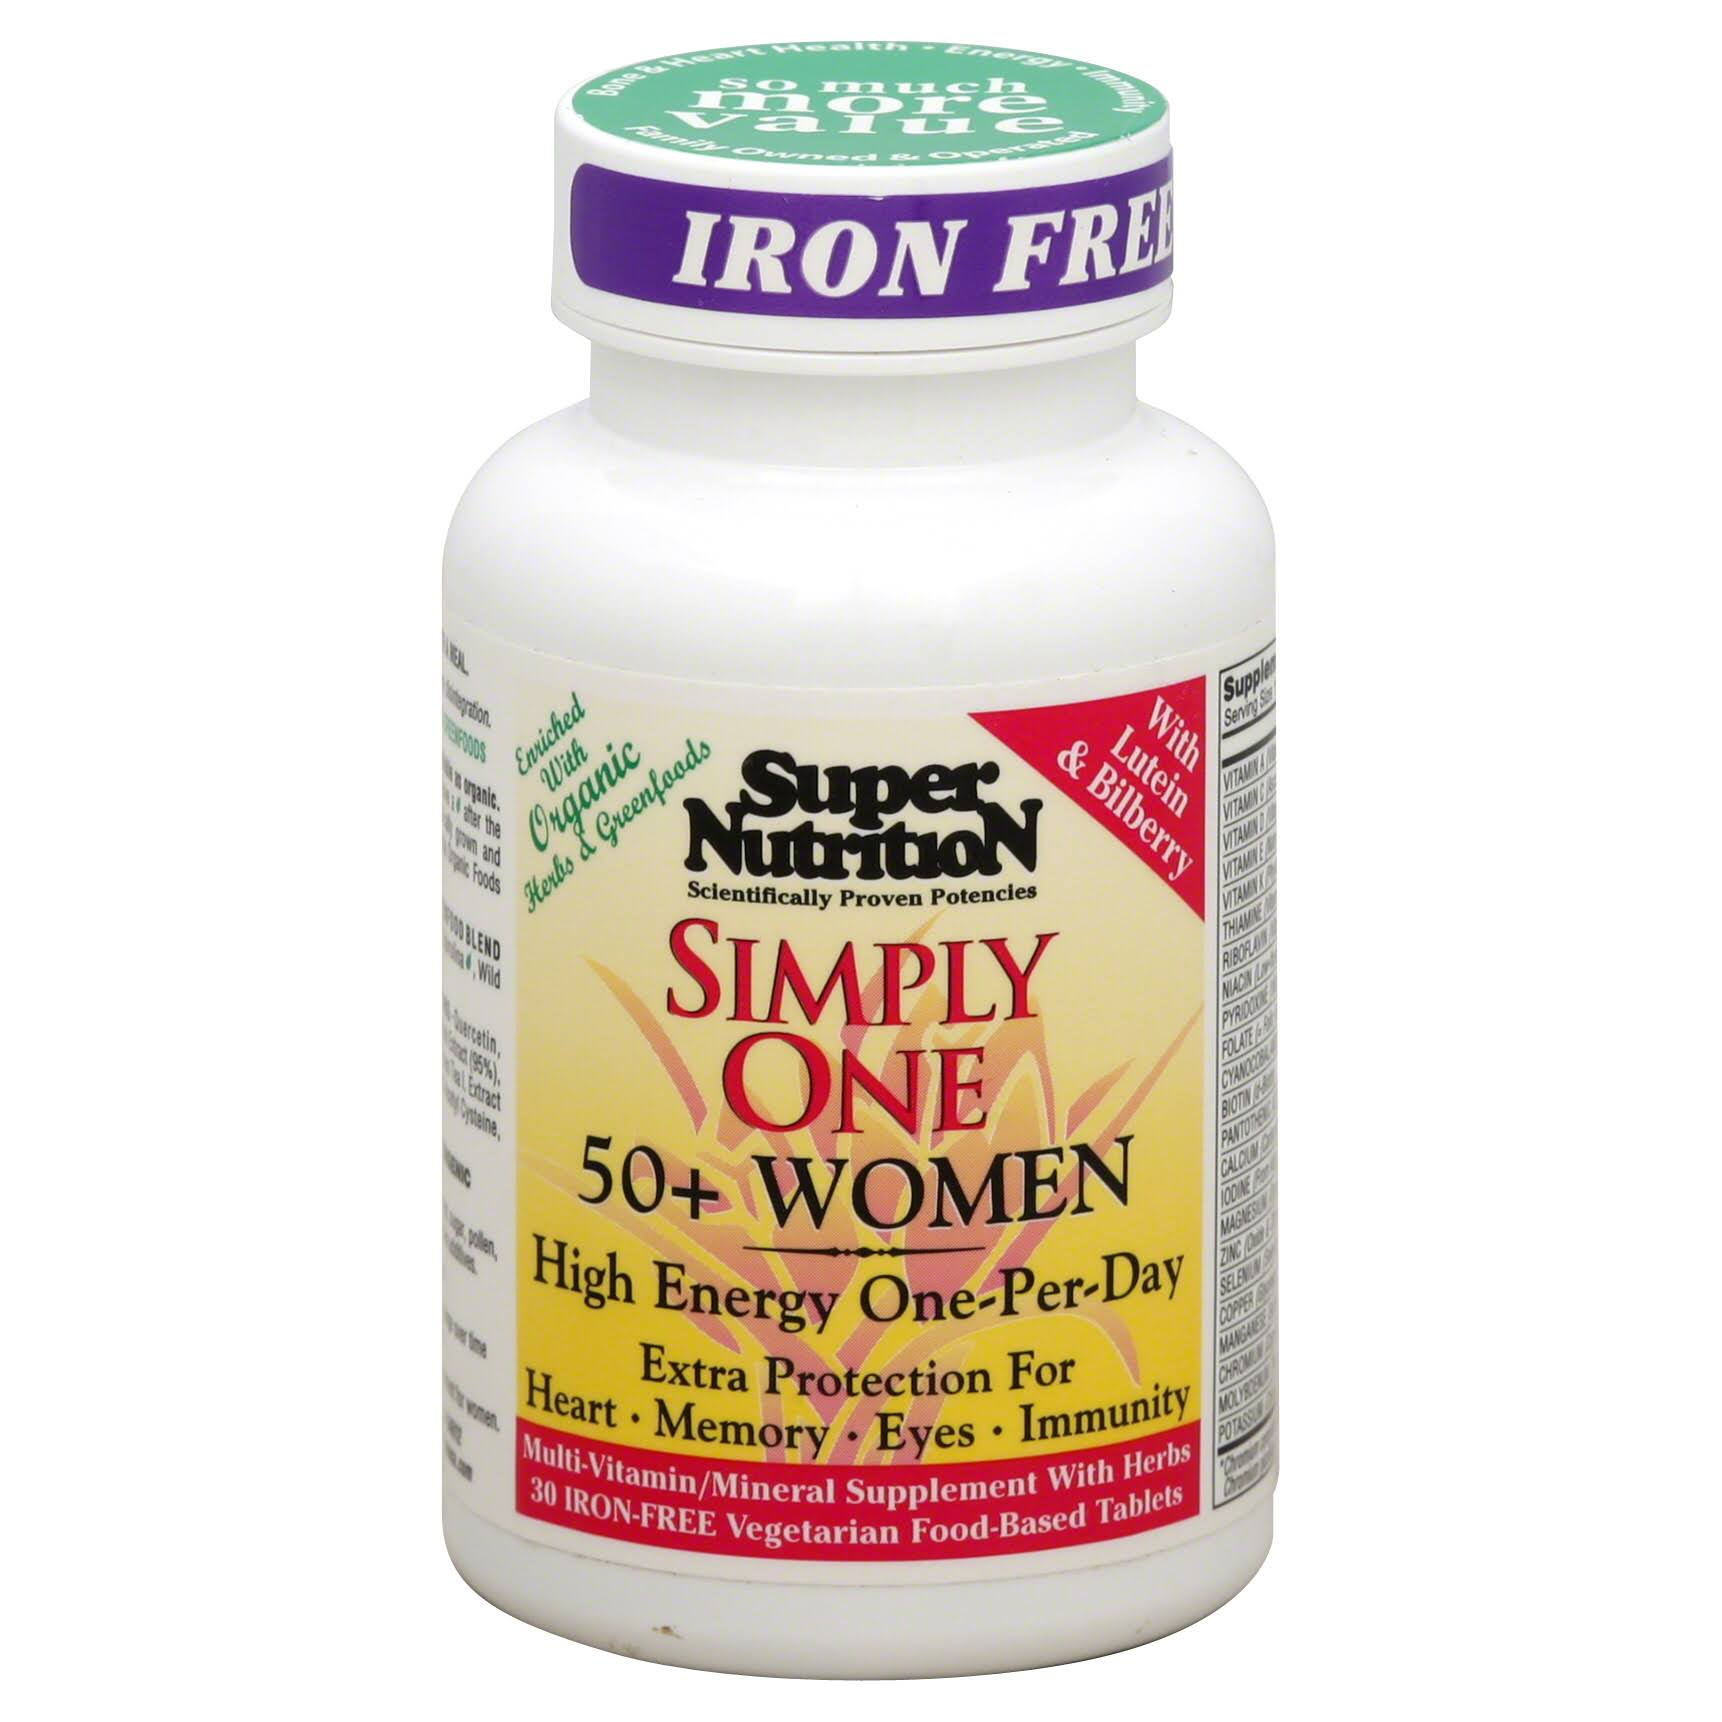 SuperNutrition Simply One 50 Plus Women Dietary Supplement - Iron-Free, 30 Count